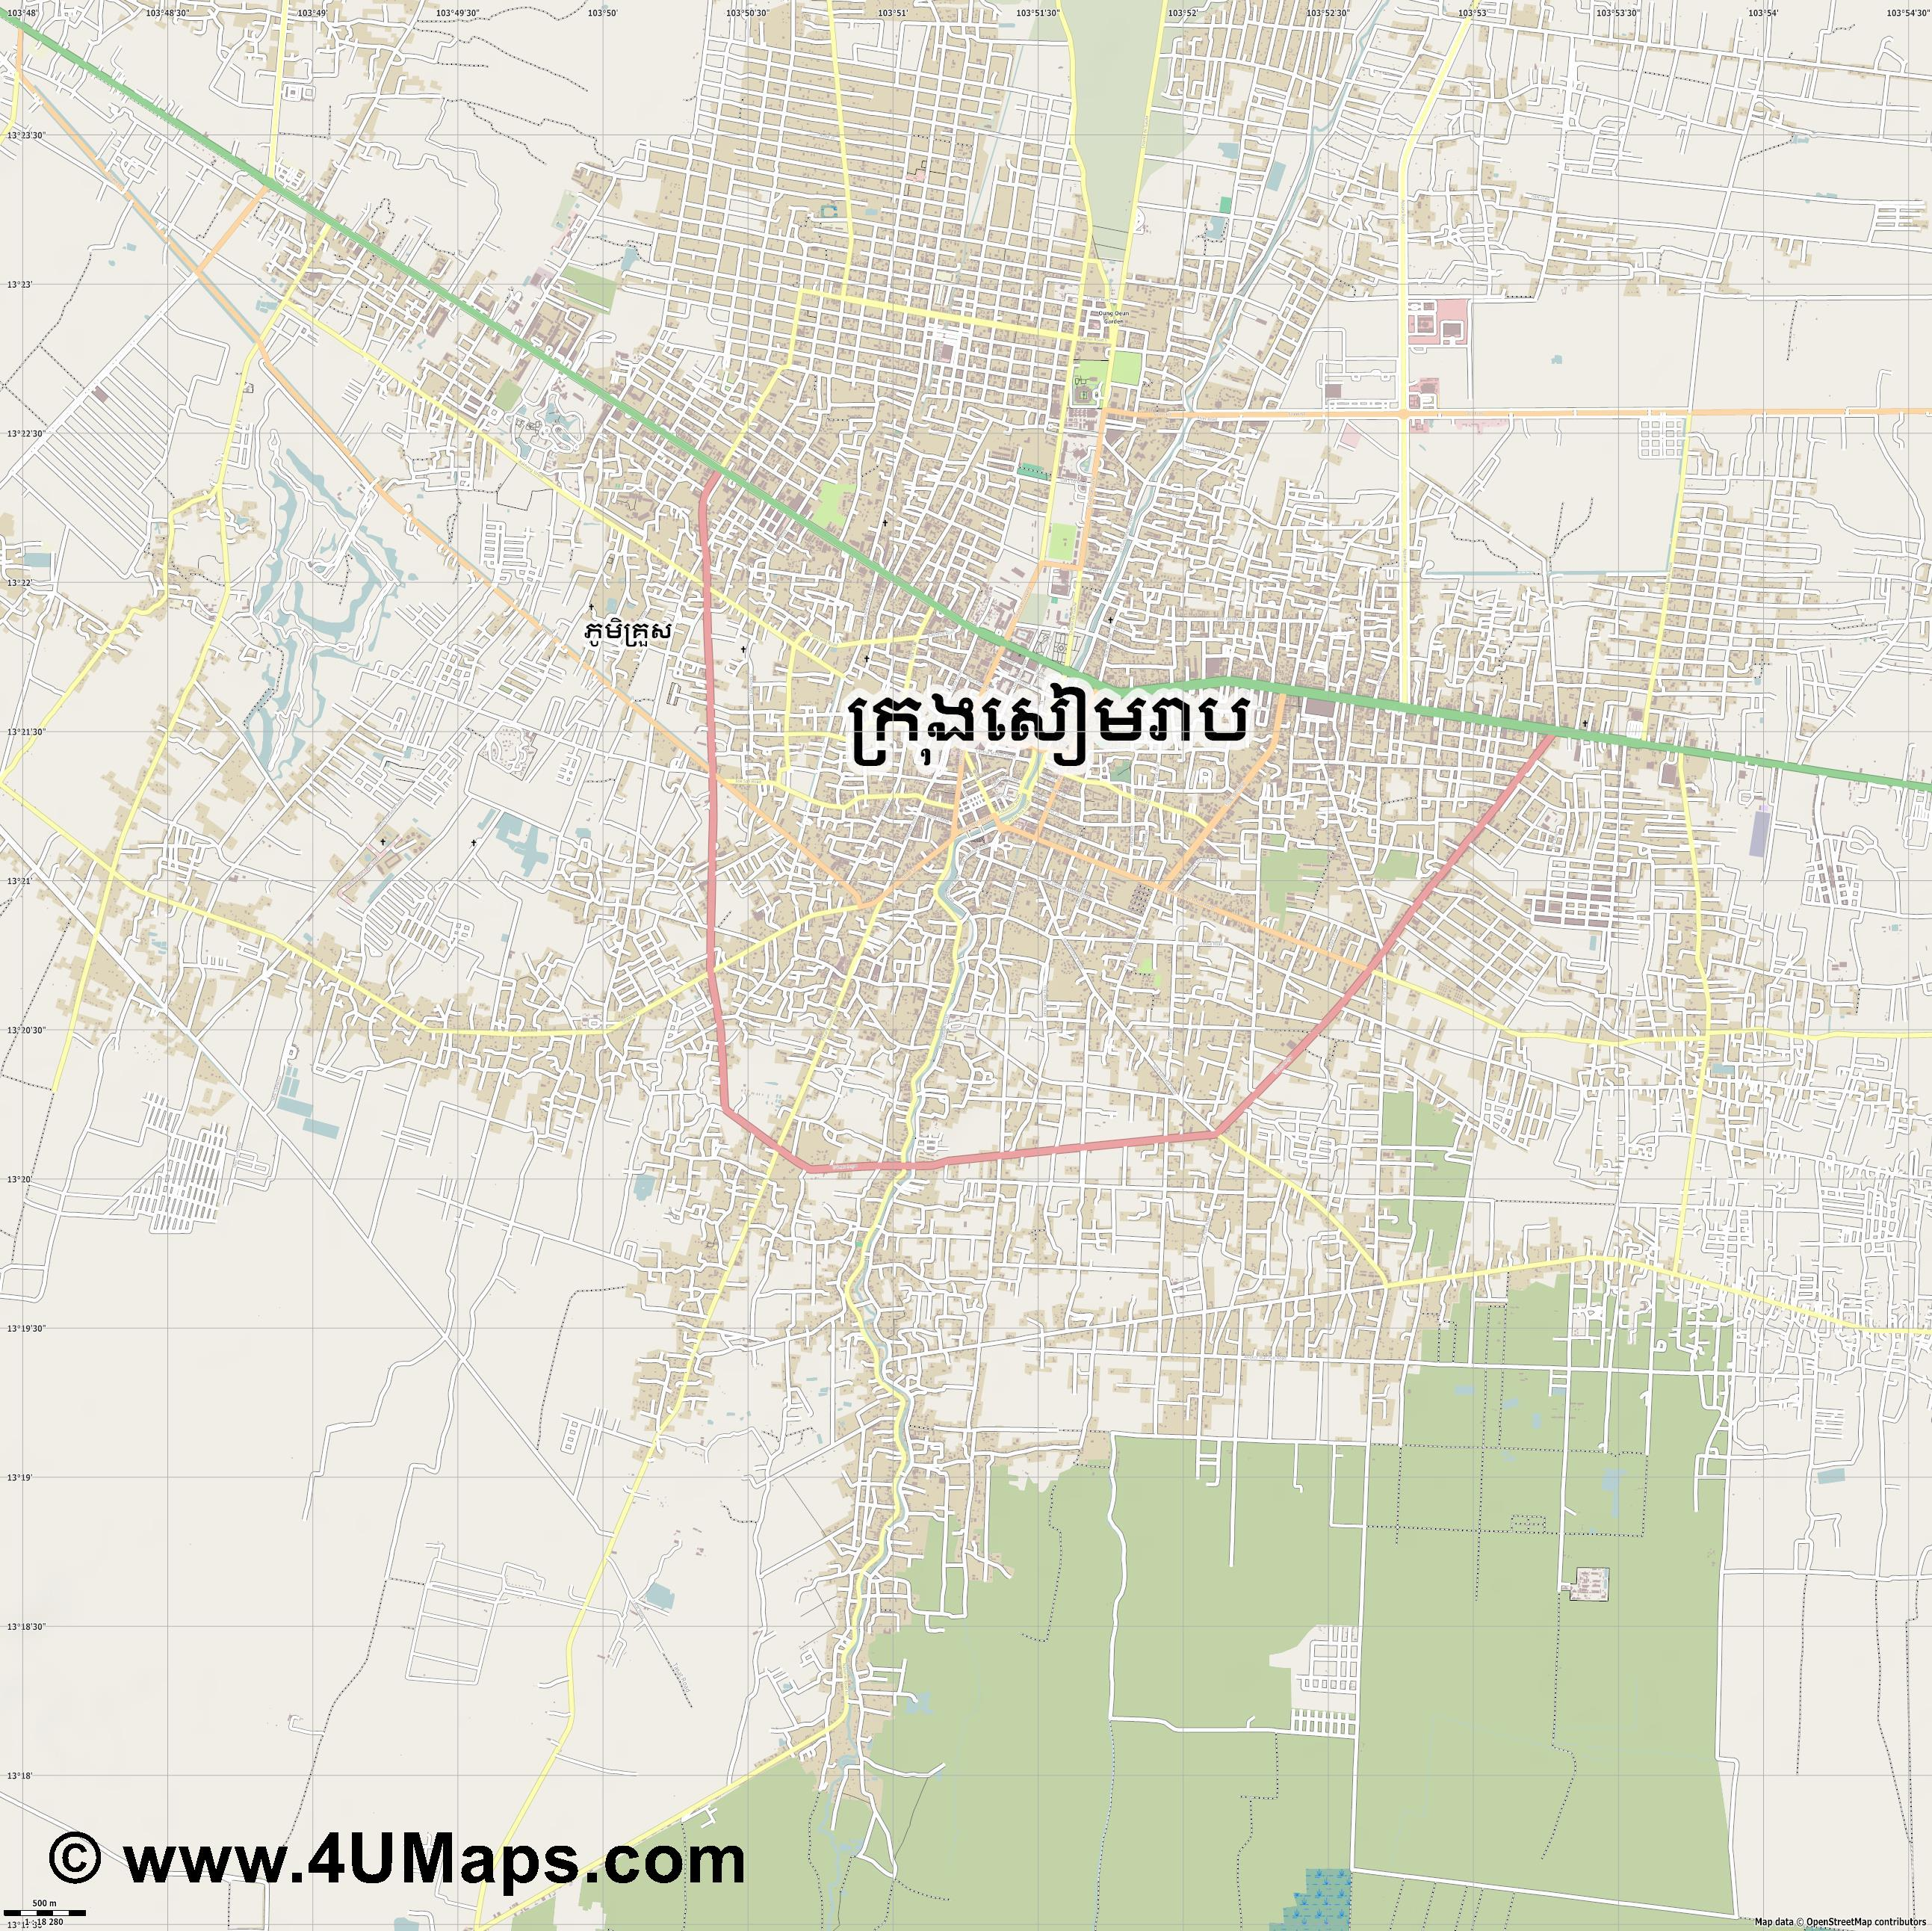 Siem Reap Ciudad de Siem Riep  jpg ultra high detail preview vector city map